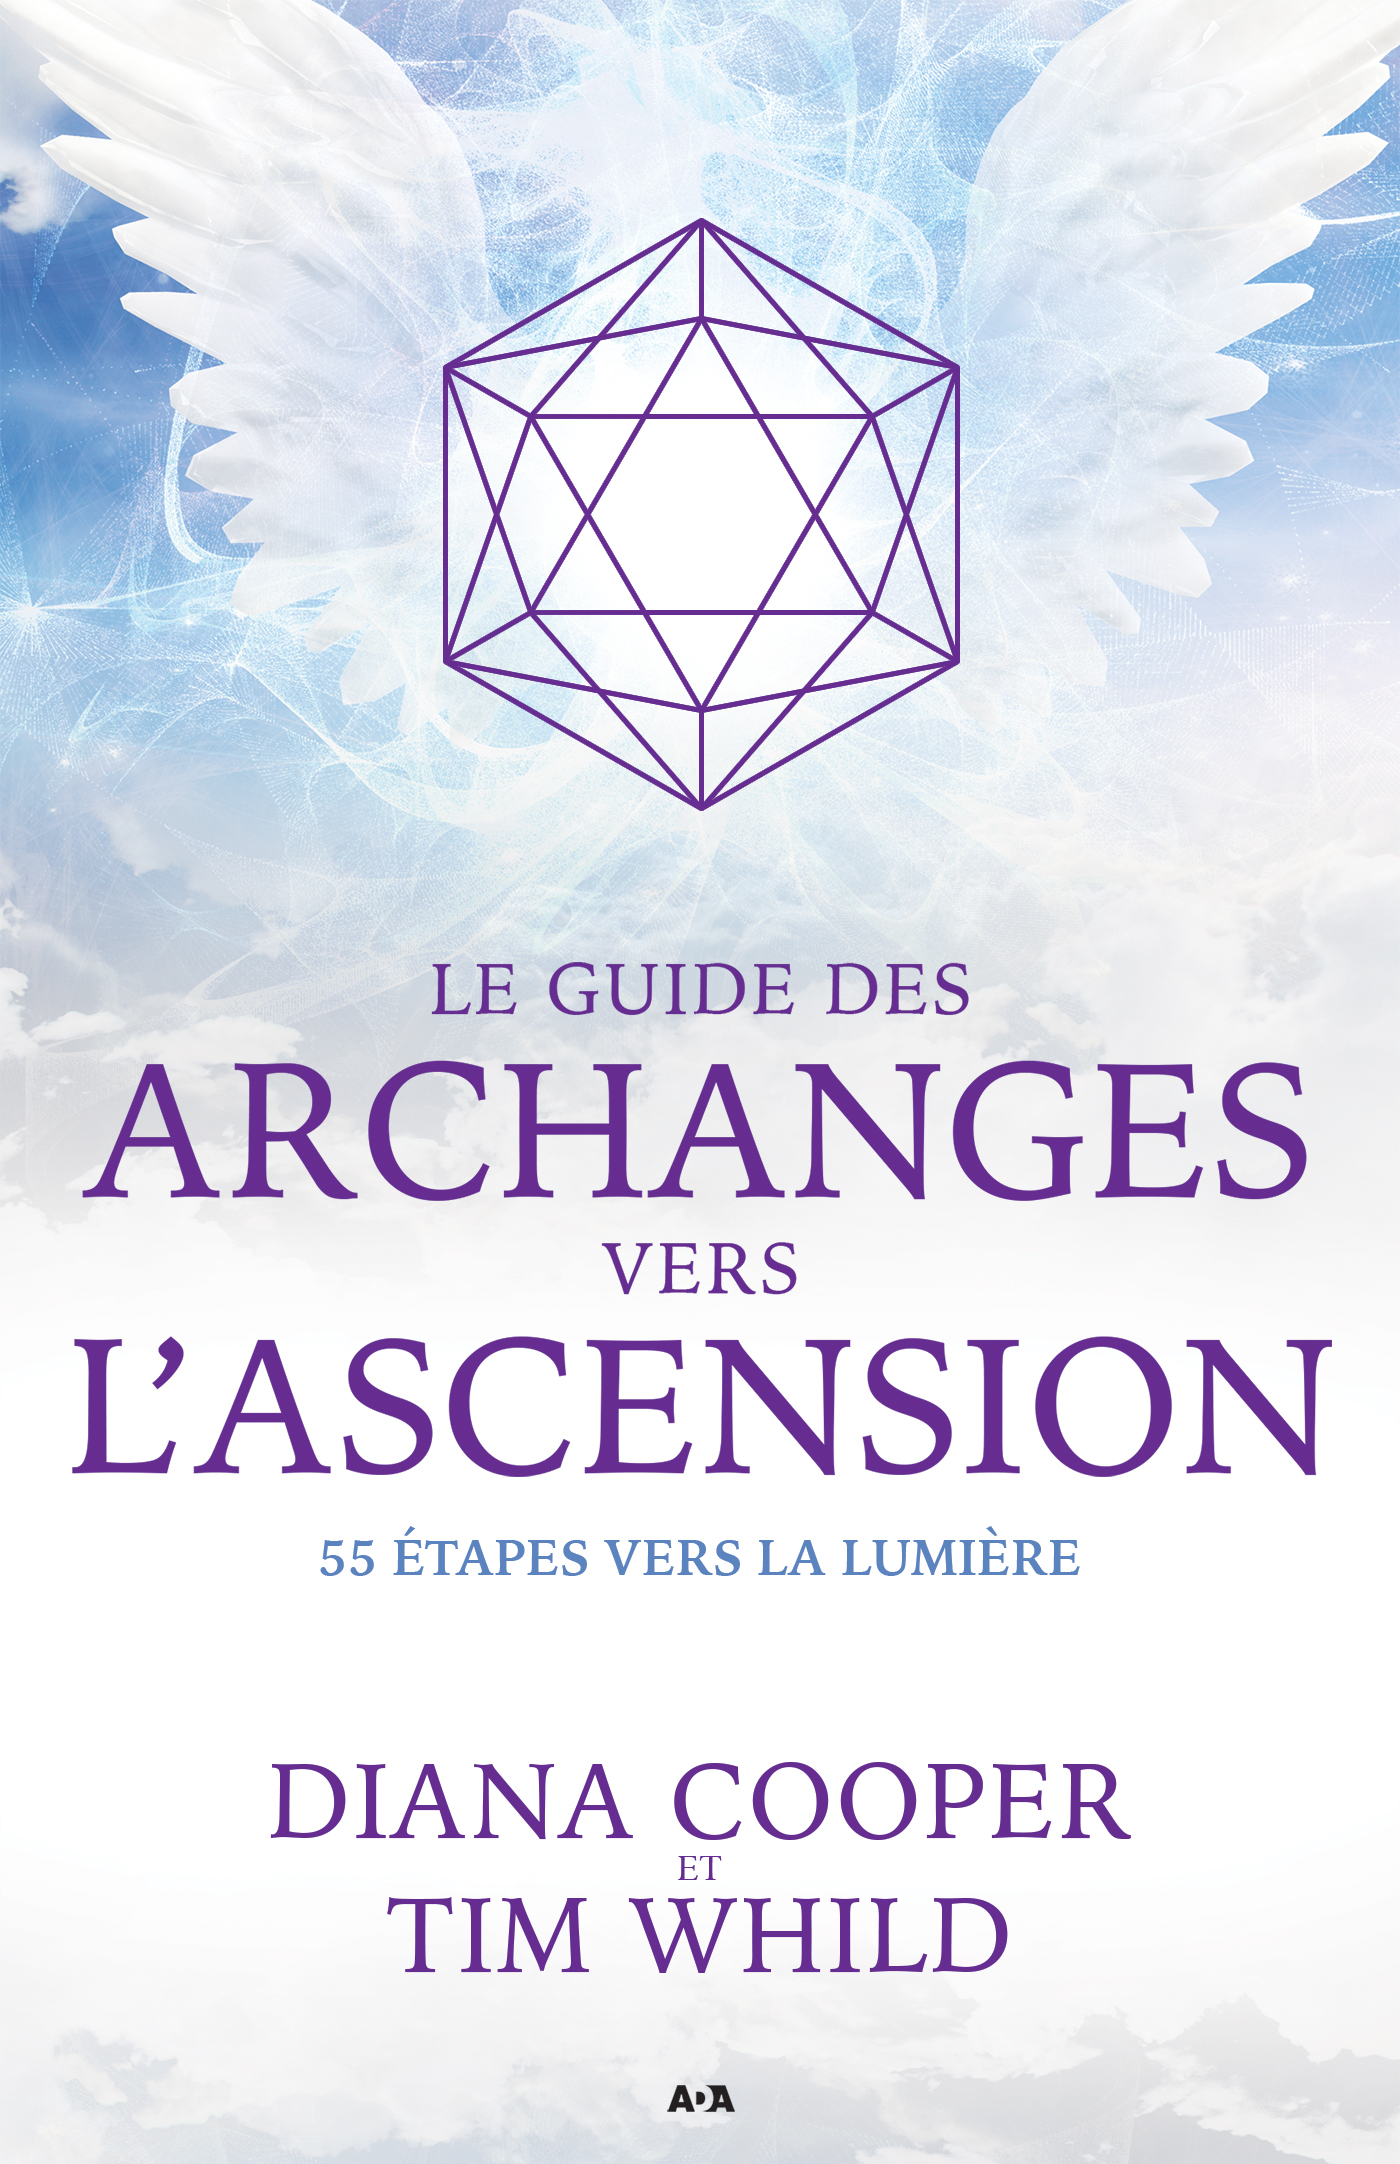 Le guide des archanges vers...